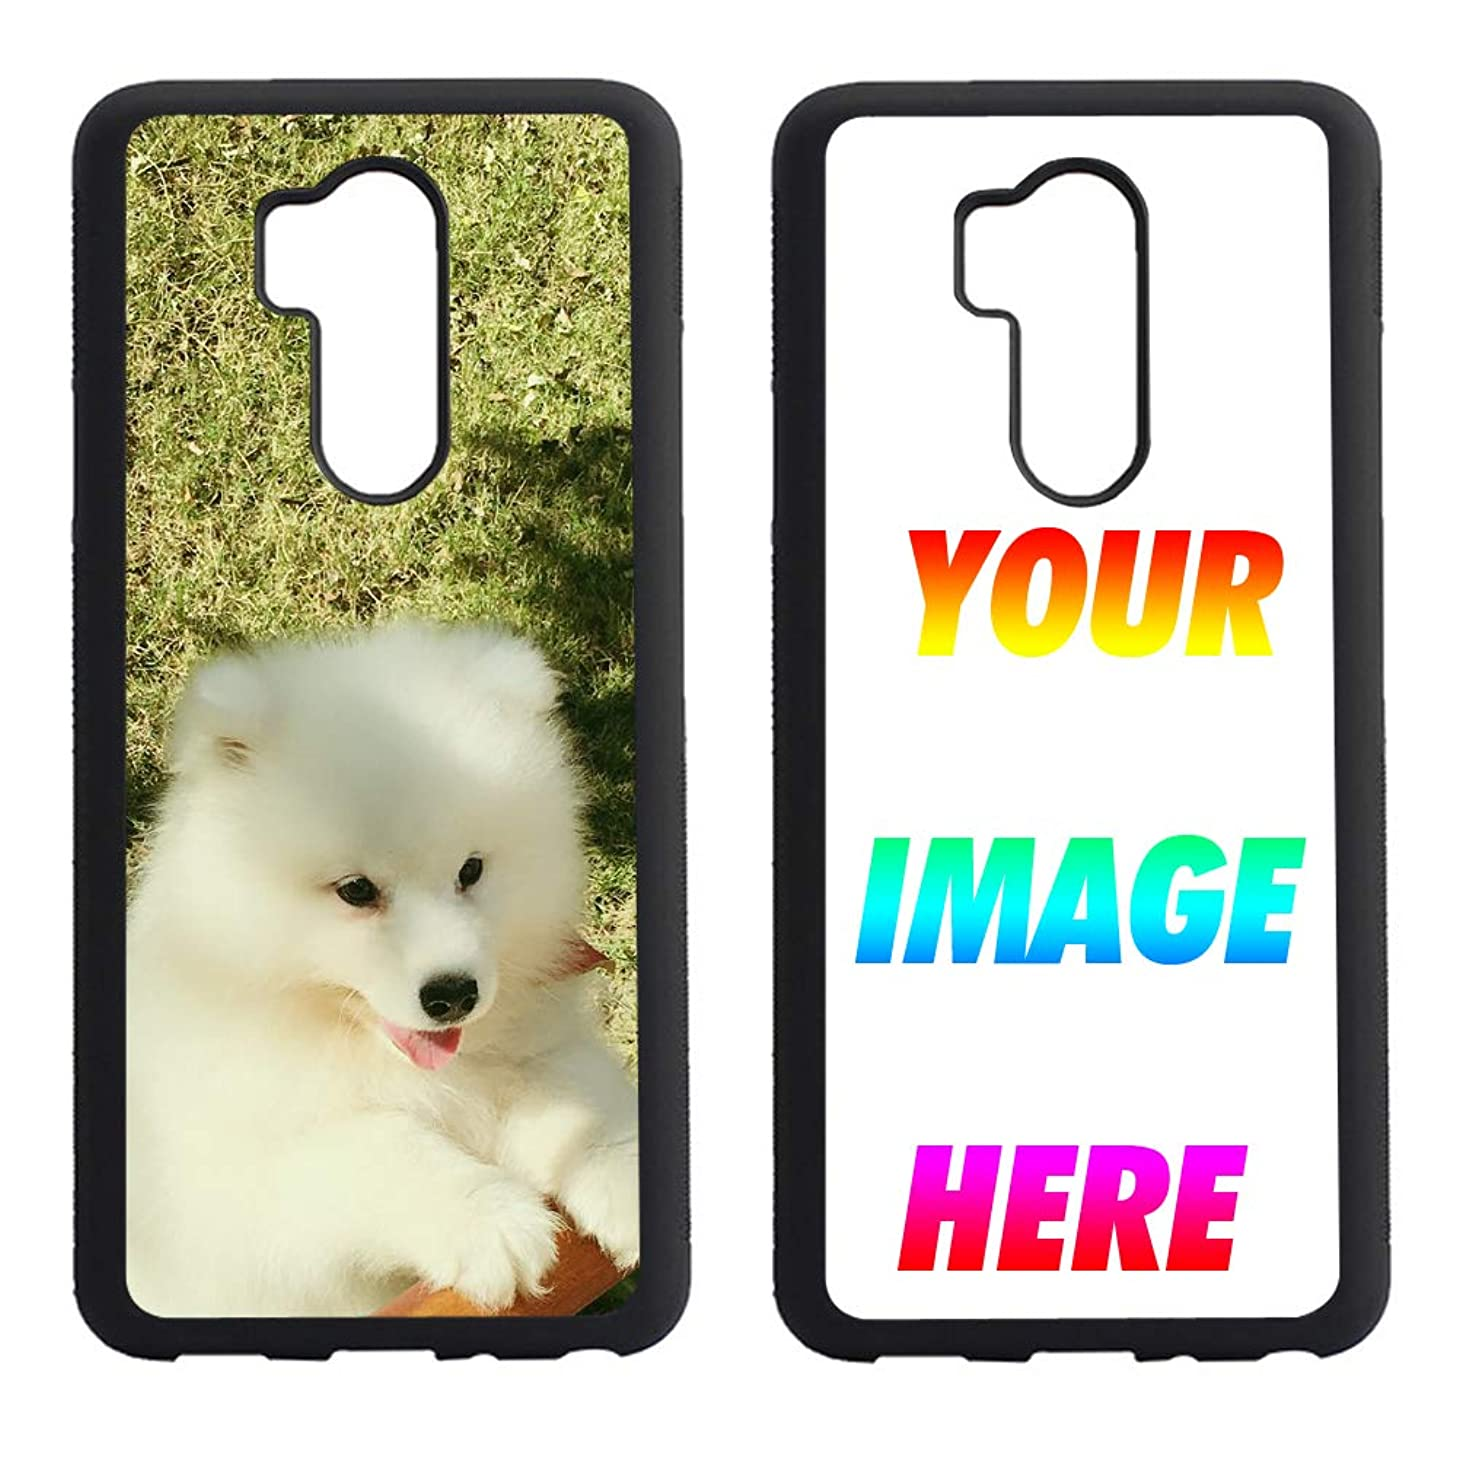 DIY Phone Case for LG G6, Create Your Own Customized Cover Case, Personalize Photo Or Name by Yourself (for LG G6)